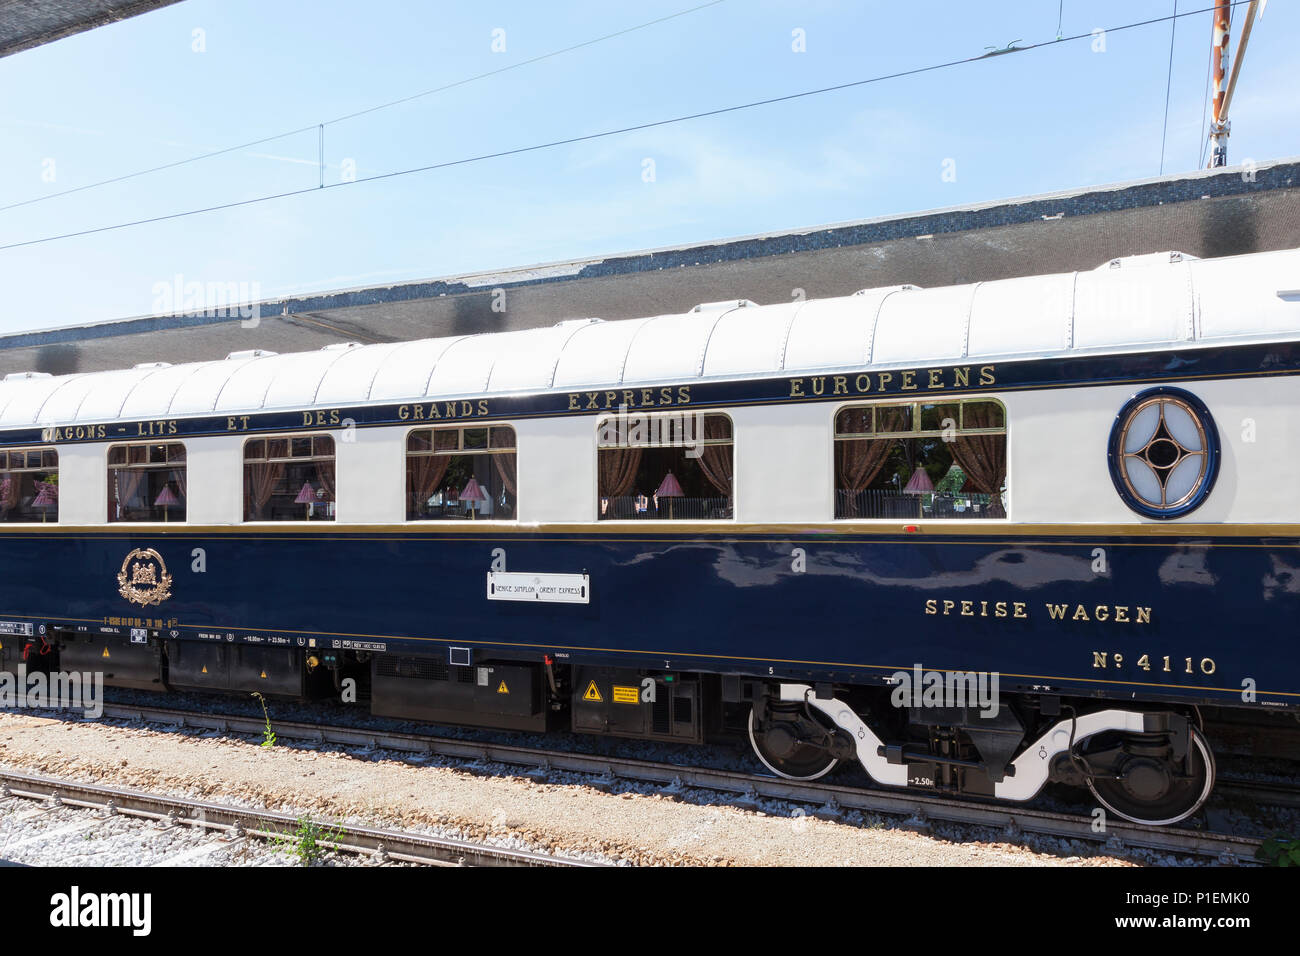 Venice Simplon Orient_Express luxury train in Venice St Lucia Station,  Venice, Veneto, Italy. Dining car, restaurant car, dining wagon,  logo, emblem - Stock Image